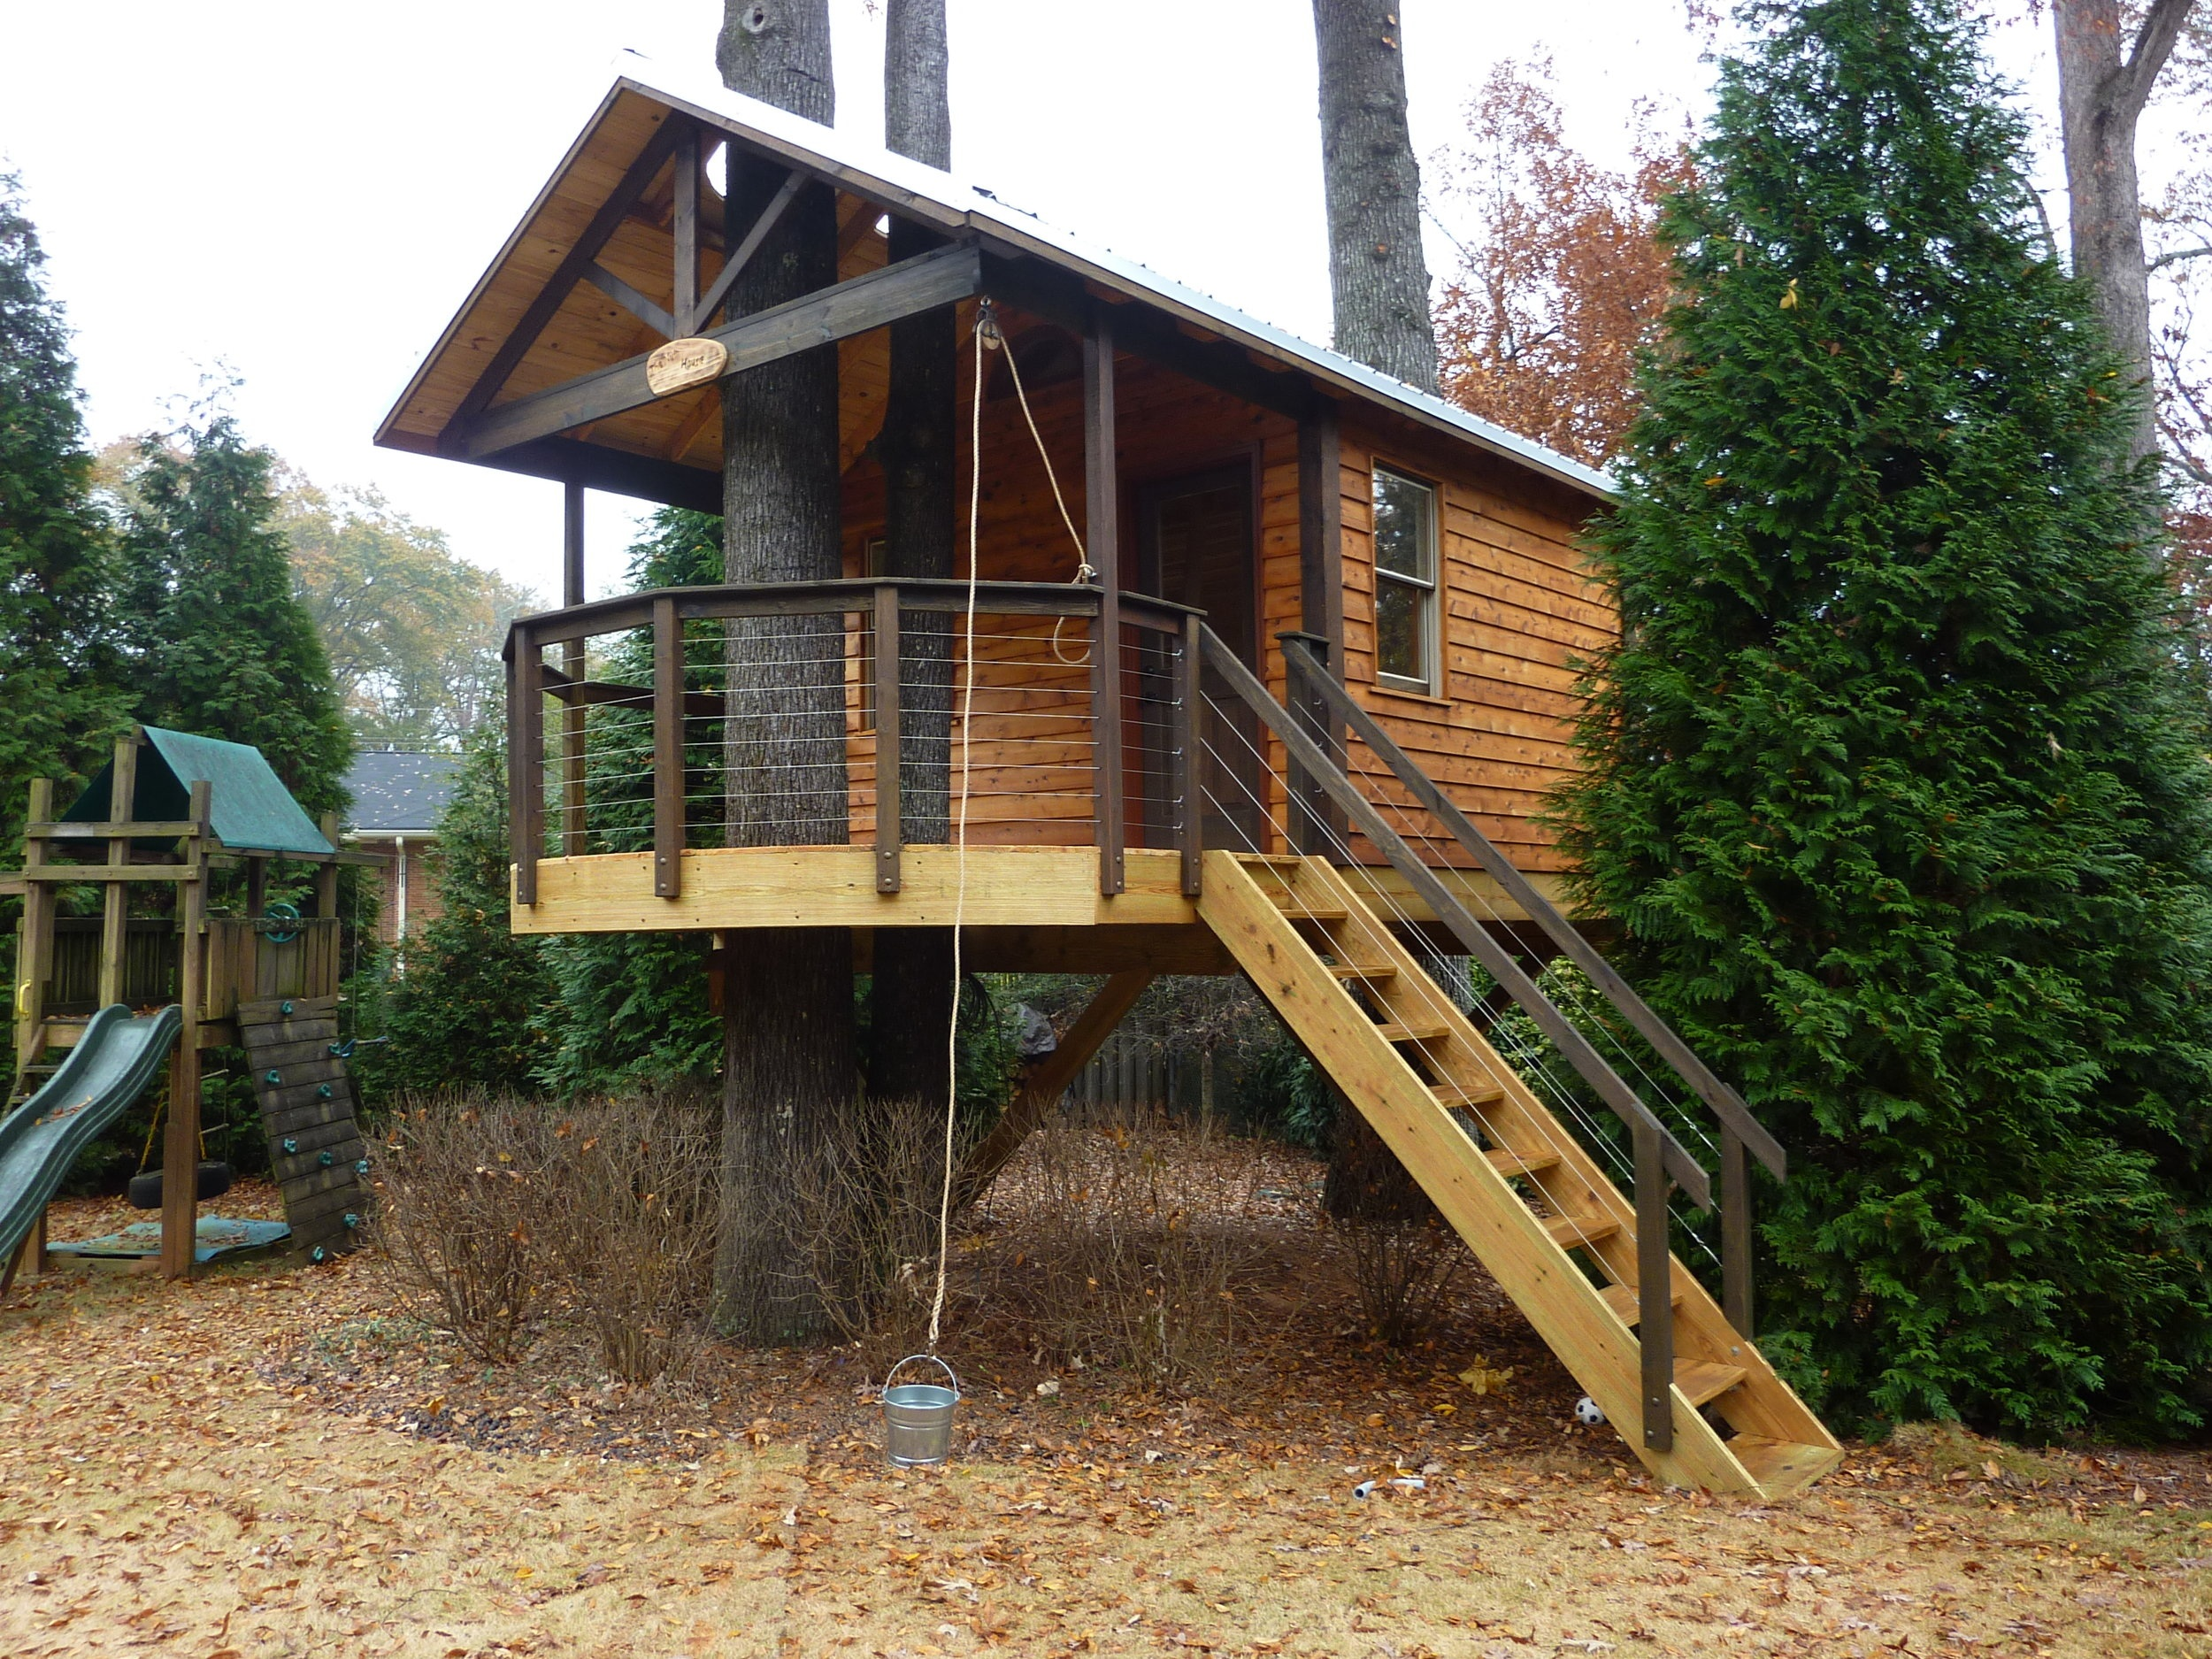 "<strong>Treehotel</strong><a href=""/new-gallery"">Click Here For More Pictures »</a>"